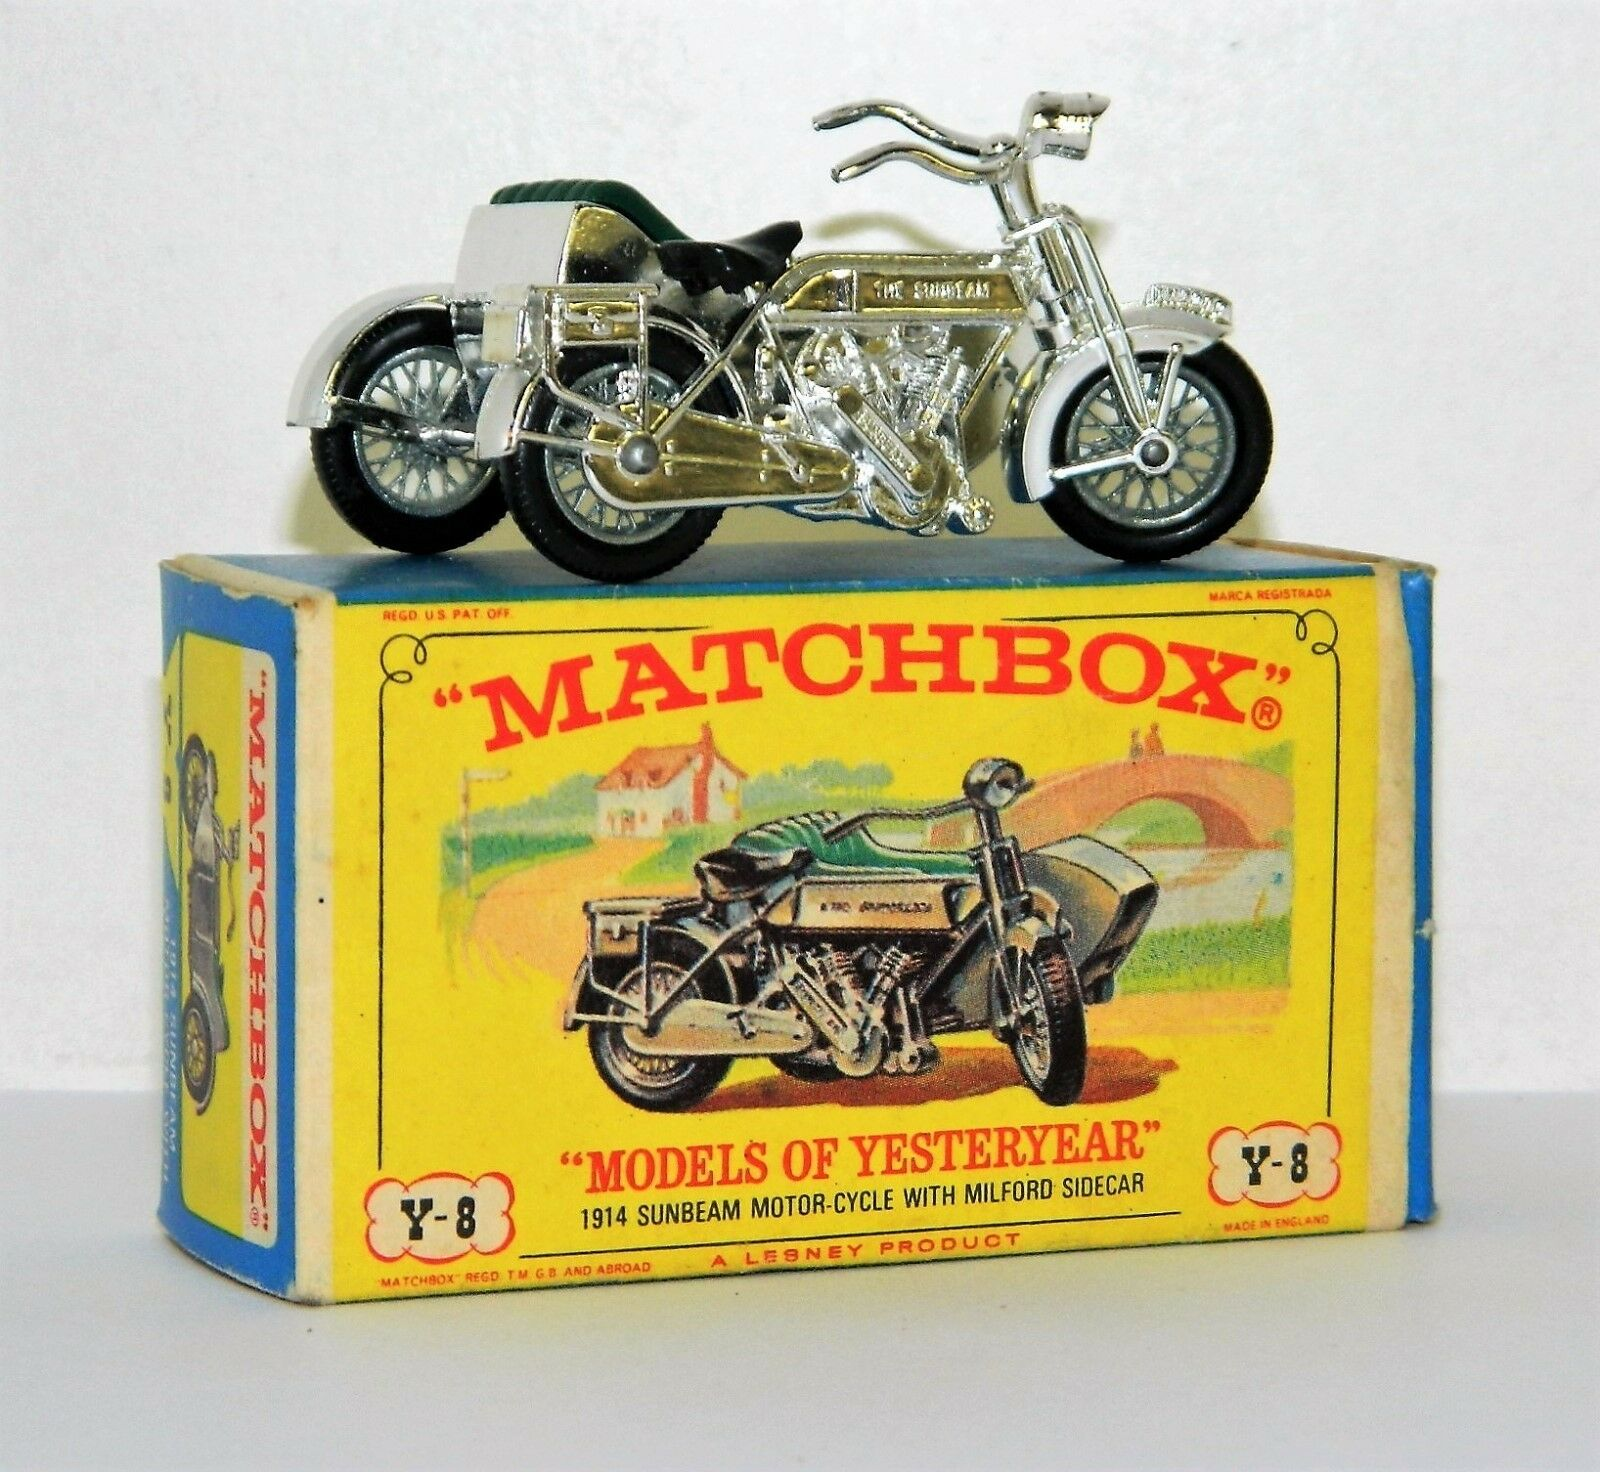 LESNEY MATCHBOX MODELS OF YESTERYEAR 1914 SUNBEAM MOTERCYCLE Y-8 MIB